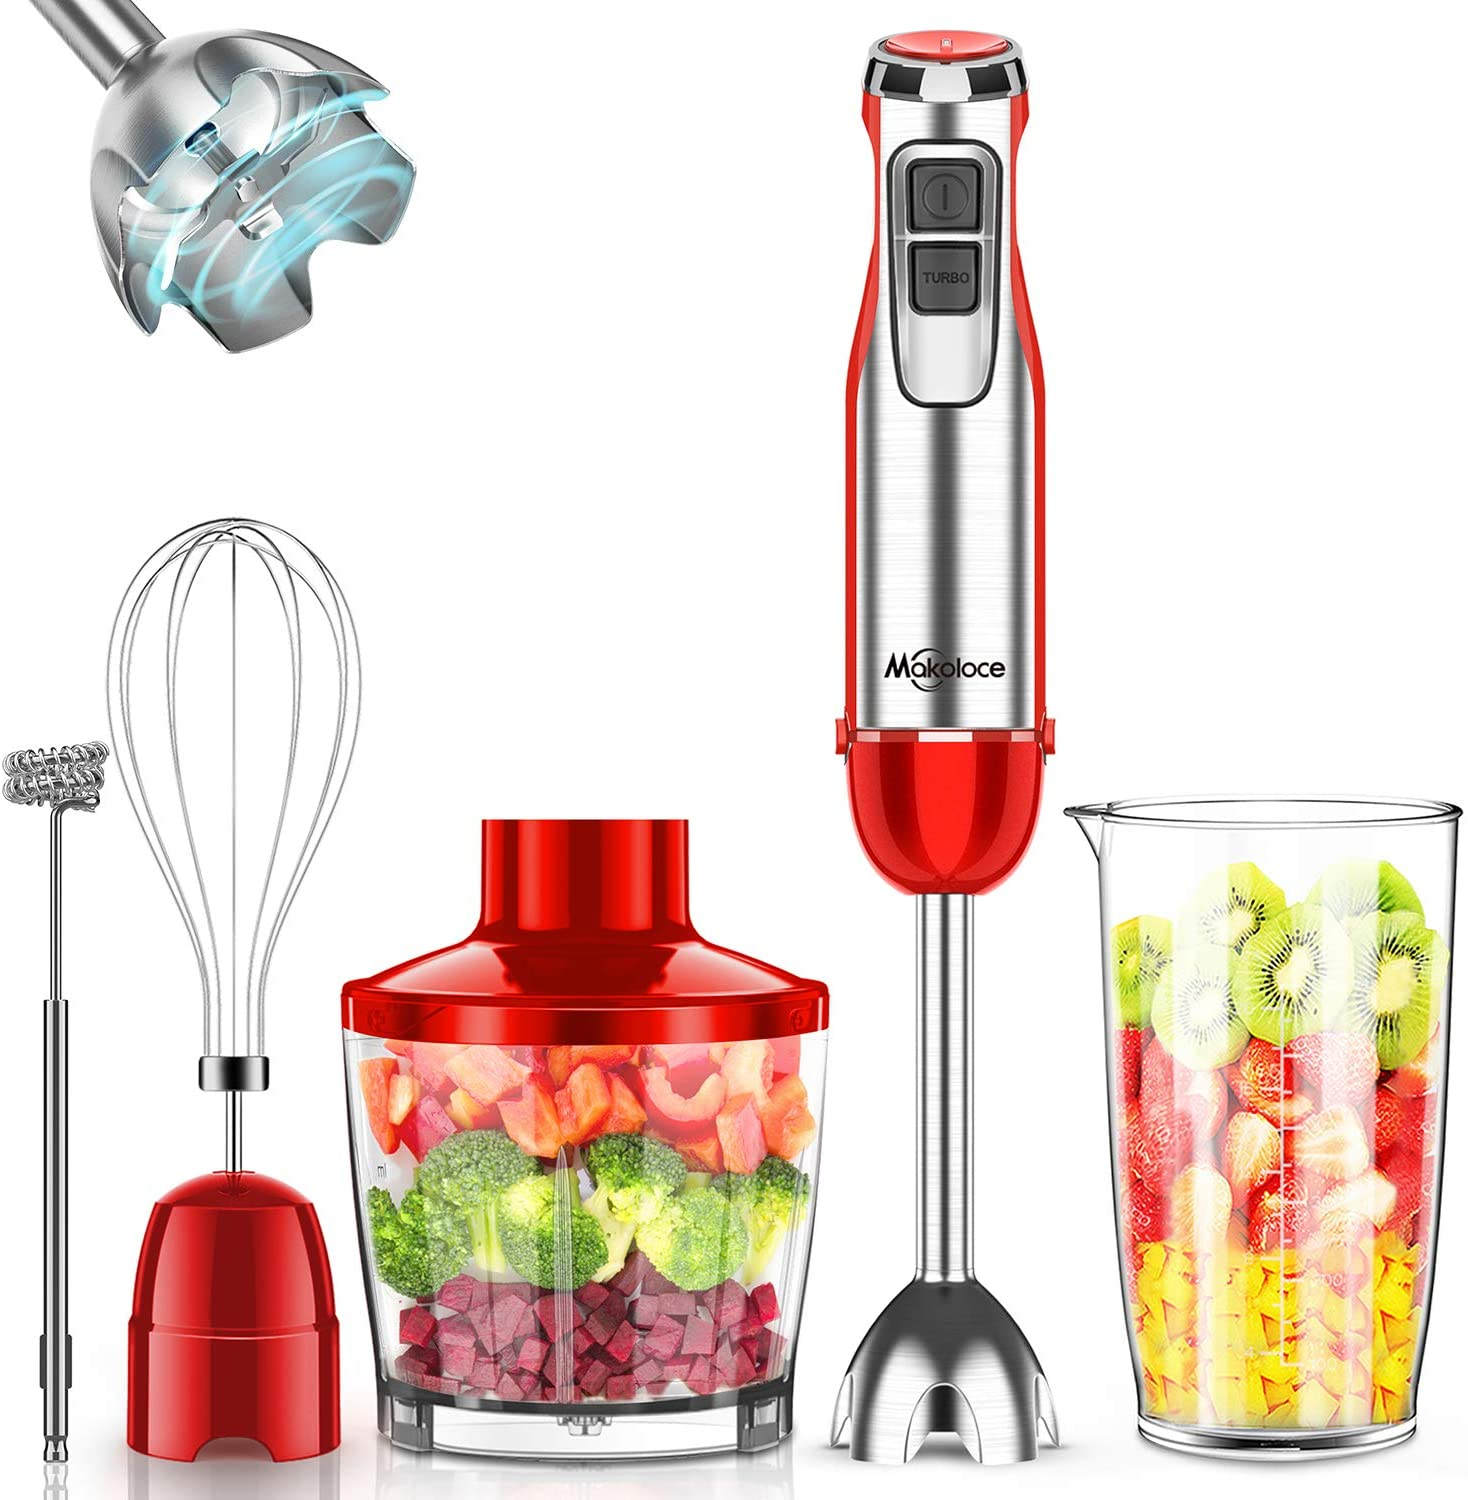 Makoloce Hand Blender 800W 5-in-1 Shipping included Han New arrival Immersion 12-Speed